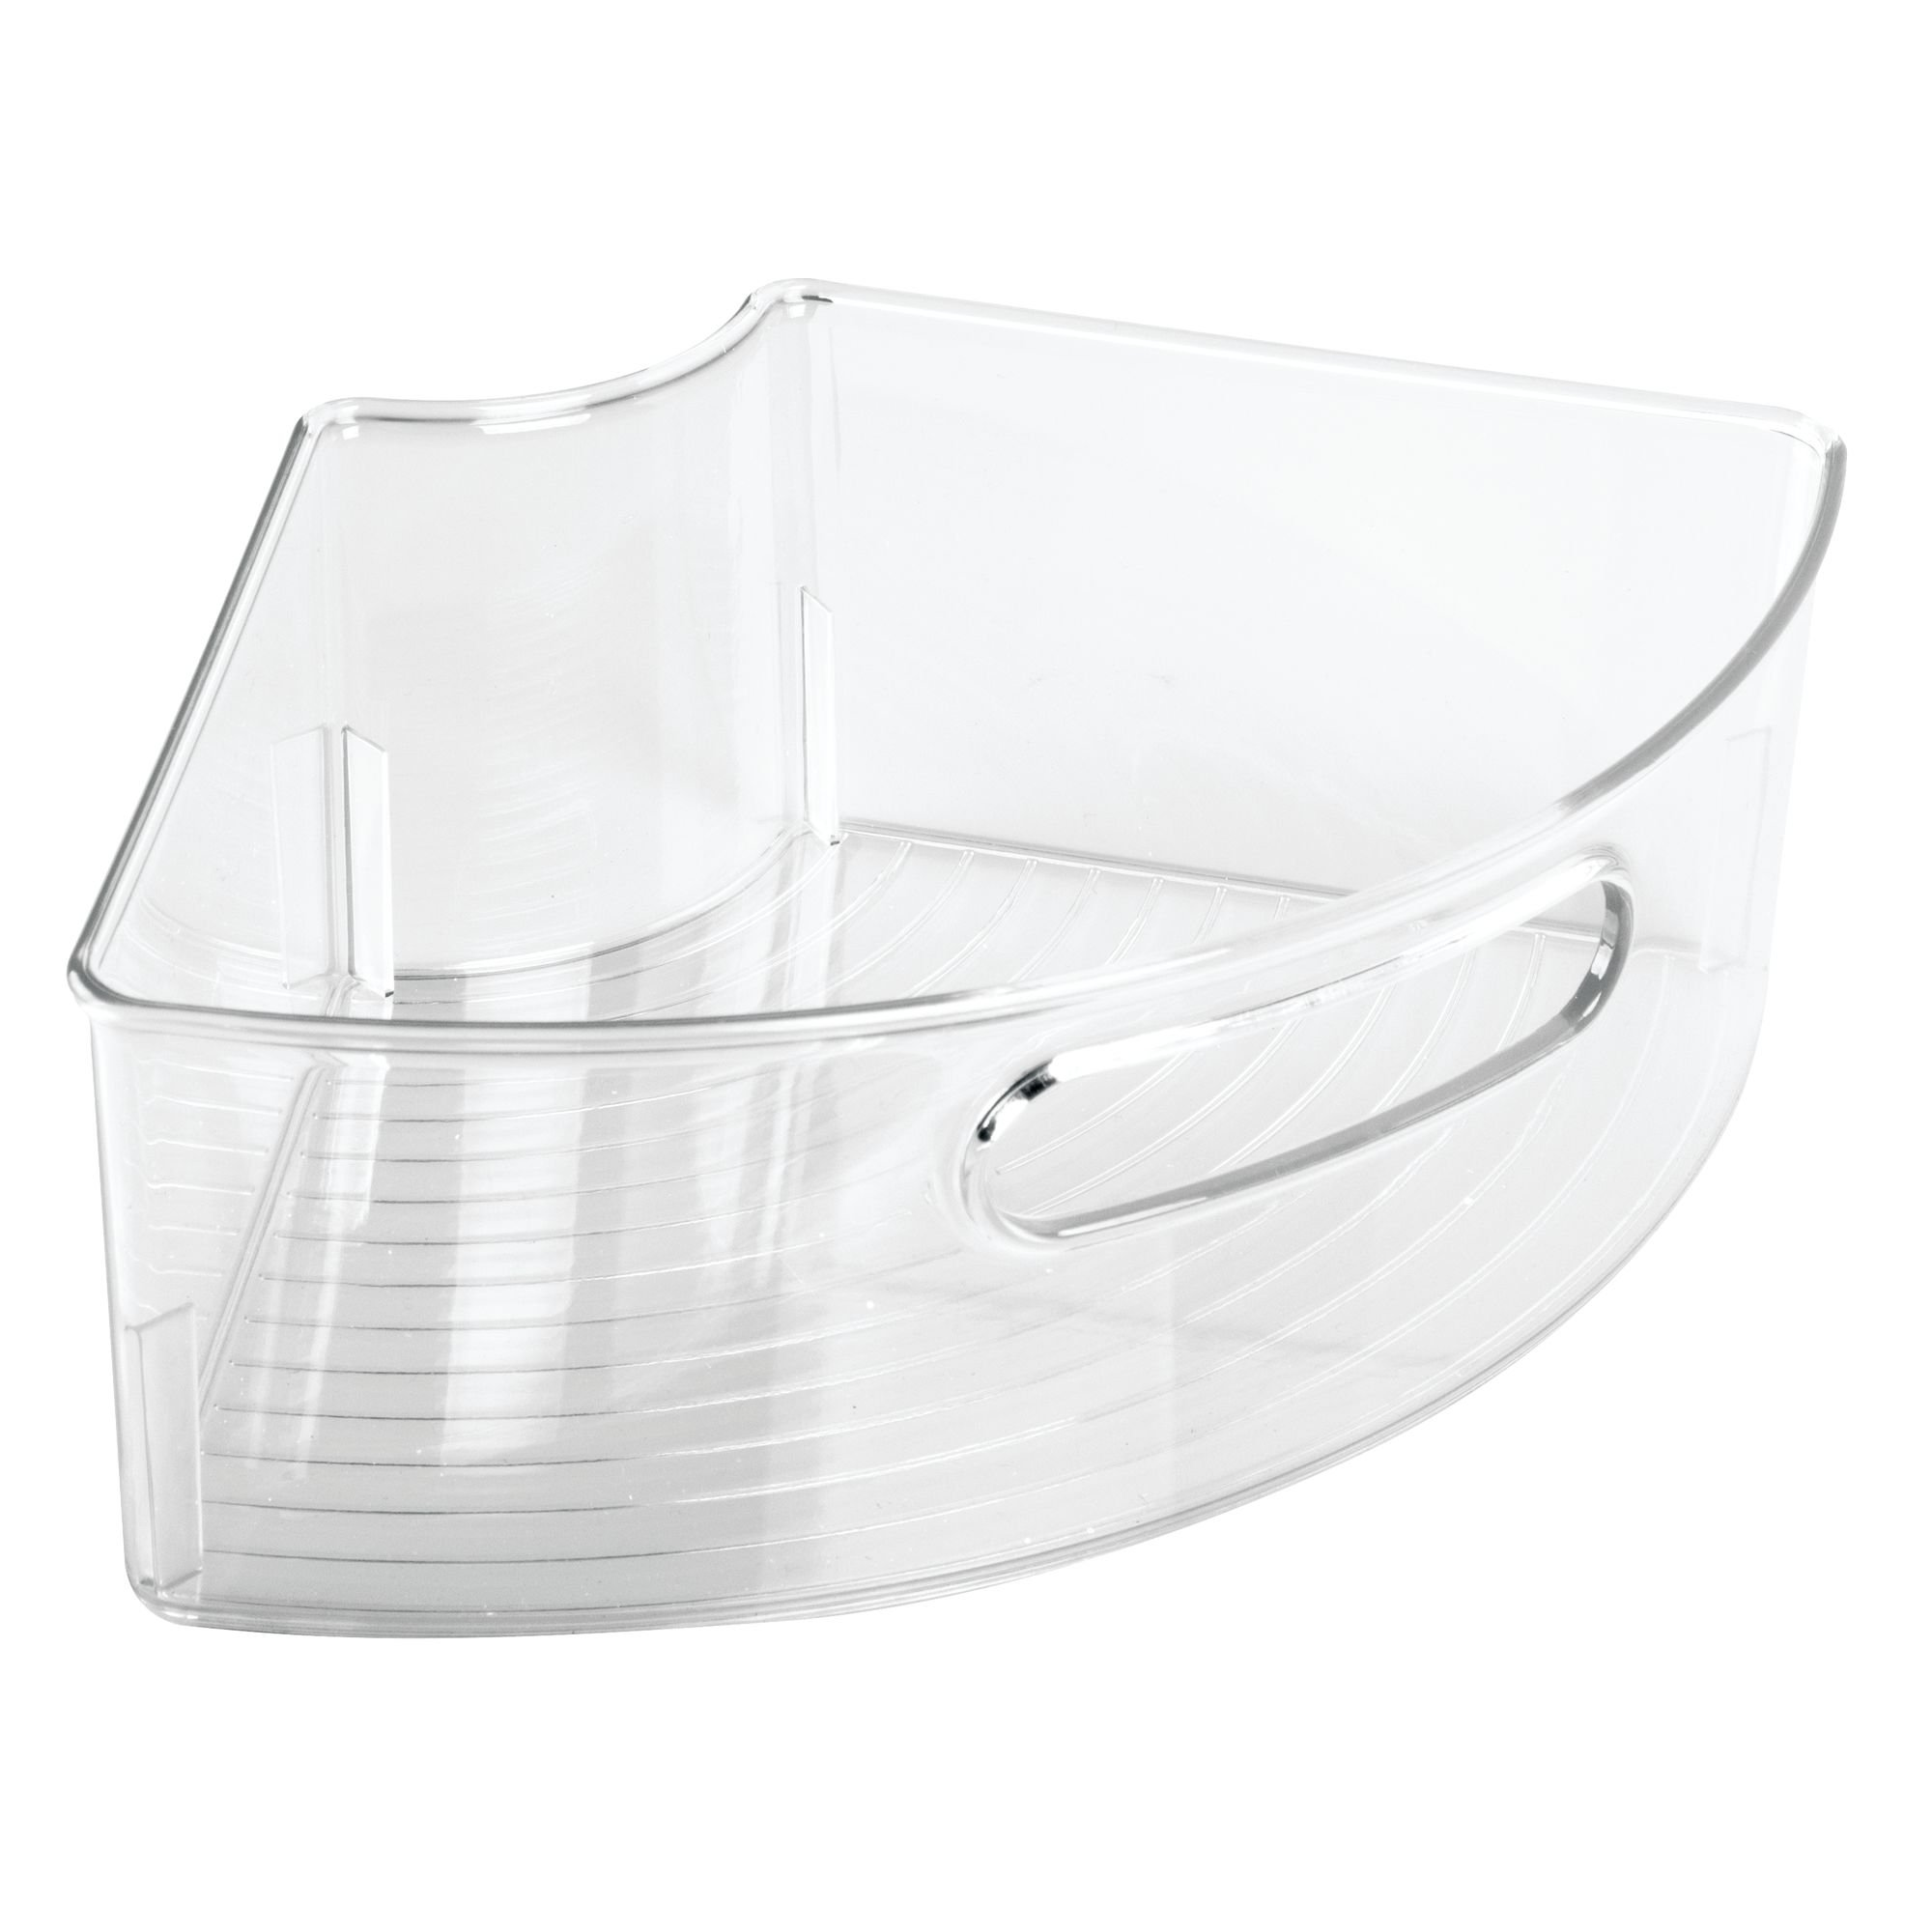 InterDesign Kitchen Binz Lazy Susan Plastic Storage Container with Handle for Organizing Pantry Cabinets – ¼ Small Wedge, Pack of 2, Clear by InterDesign